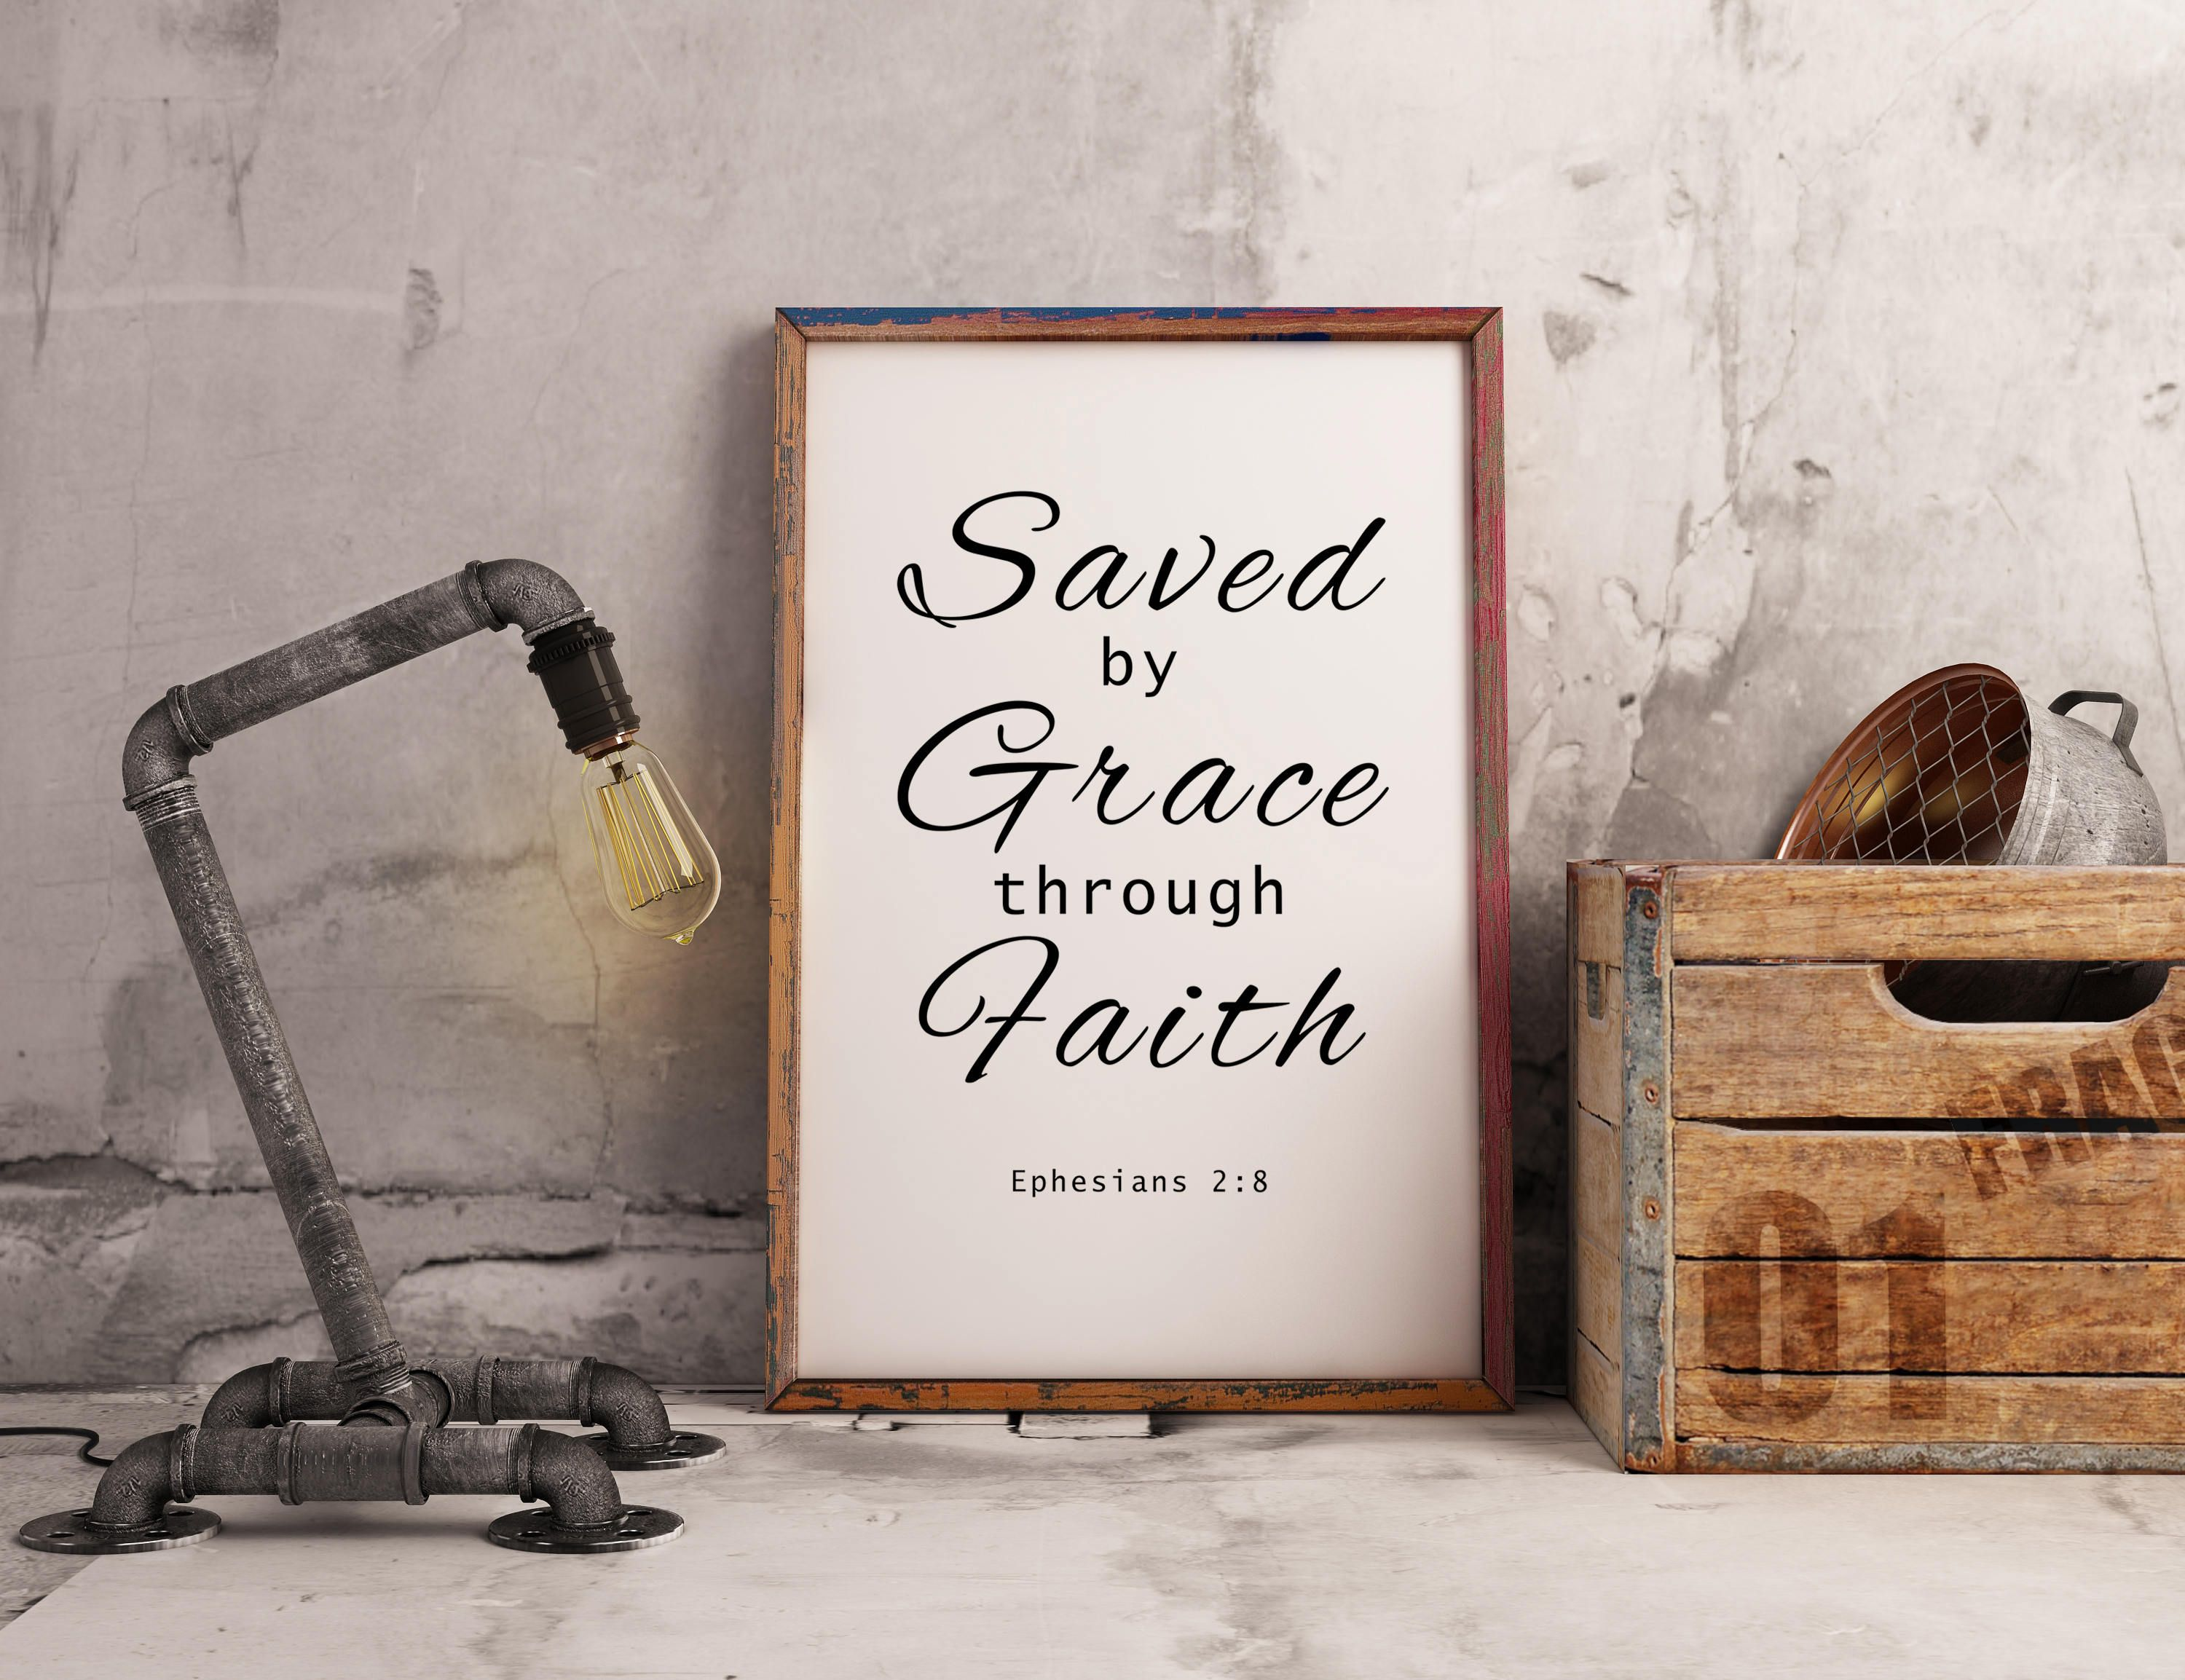 Saved by grace through faith ephesians 2 v 8 bible verse saved by grace through faith ephesians 2 v 8 bible verse scripture bible quote spiritual gift christian wall art instant download negle Choice Image